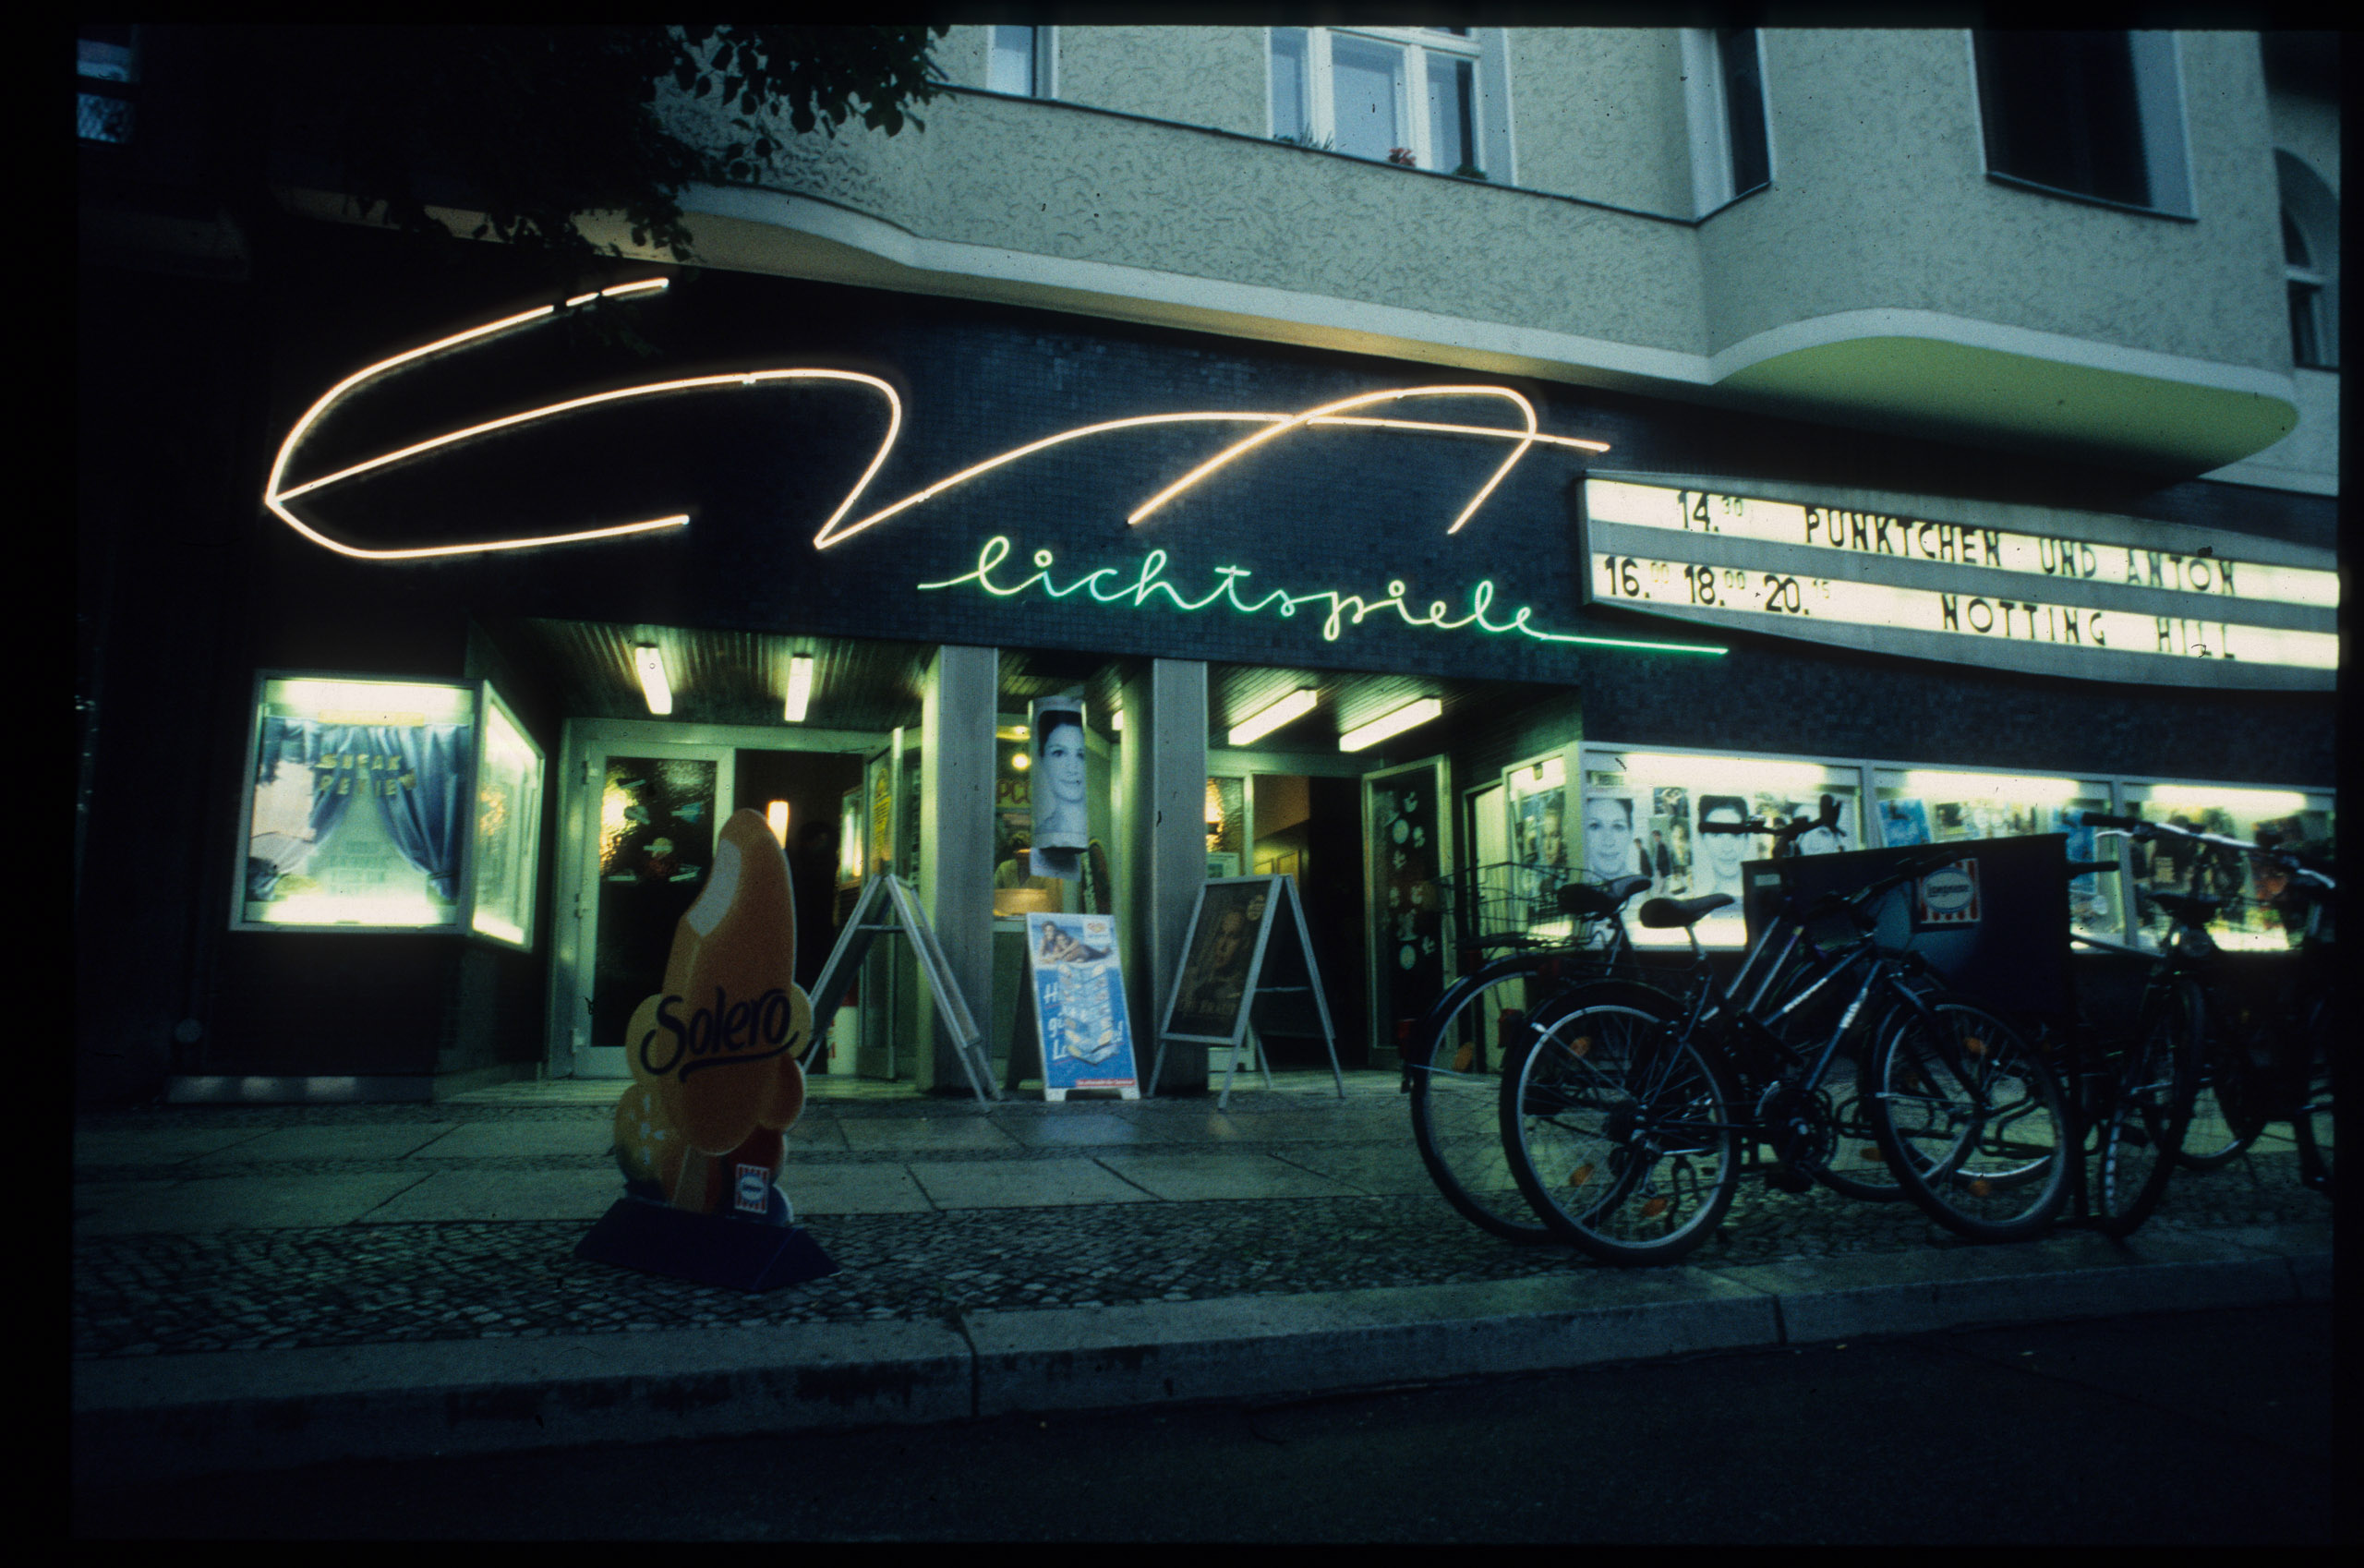 Color photo: façade at night with illuminated lettering and display panel